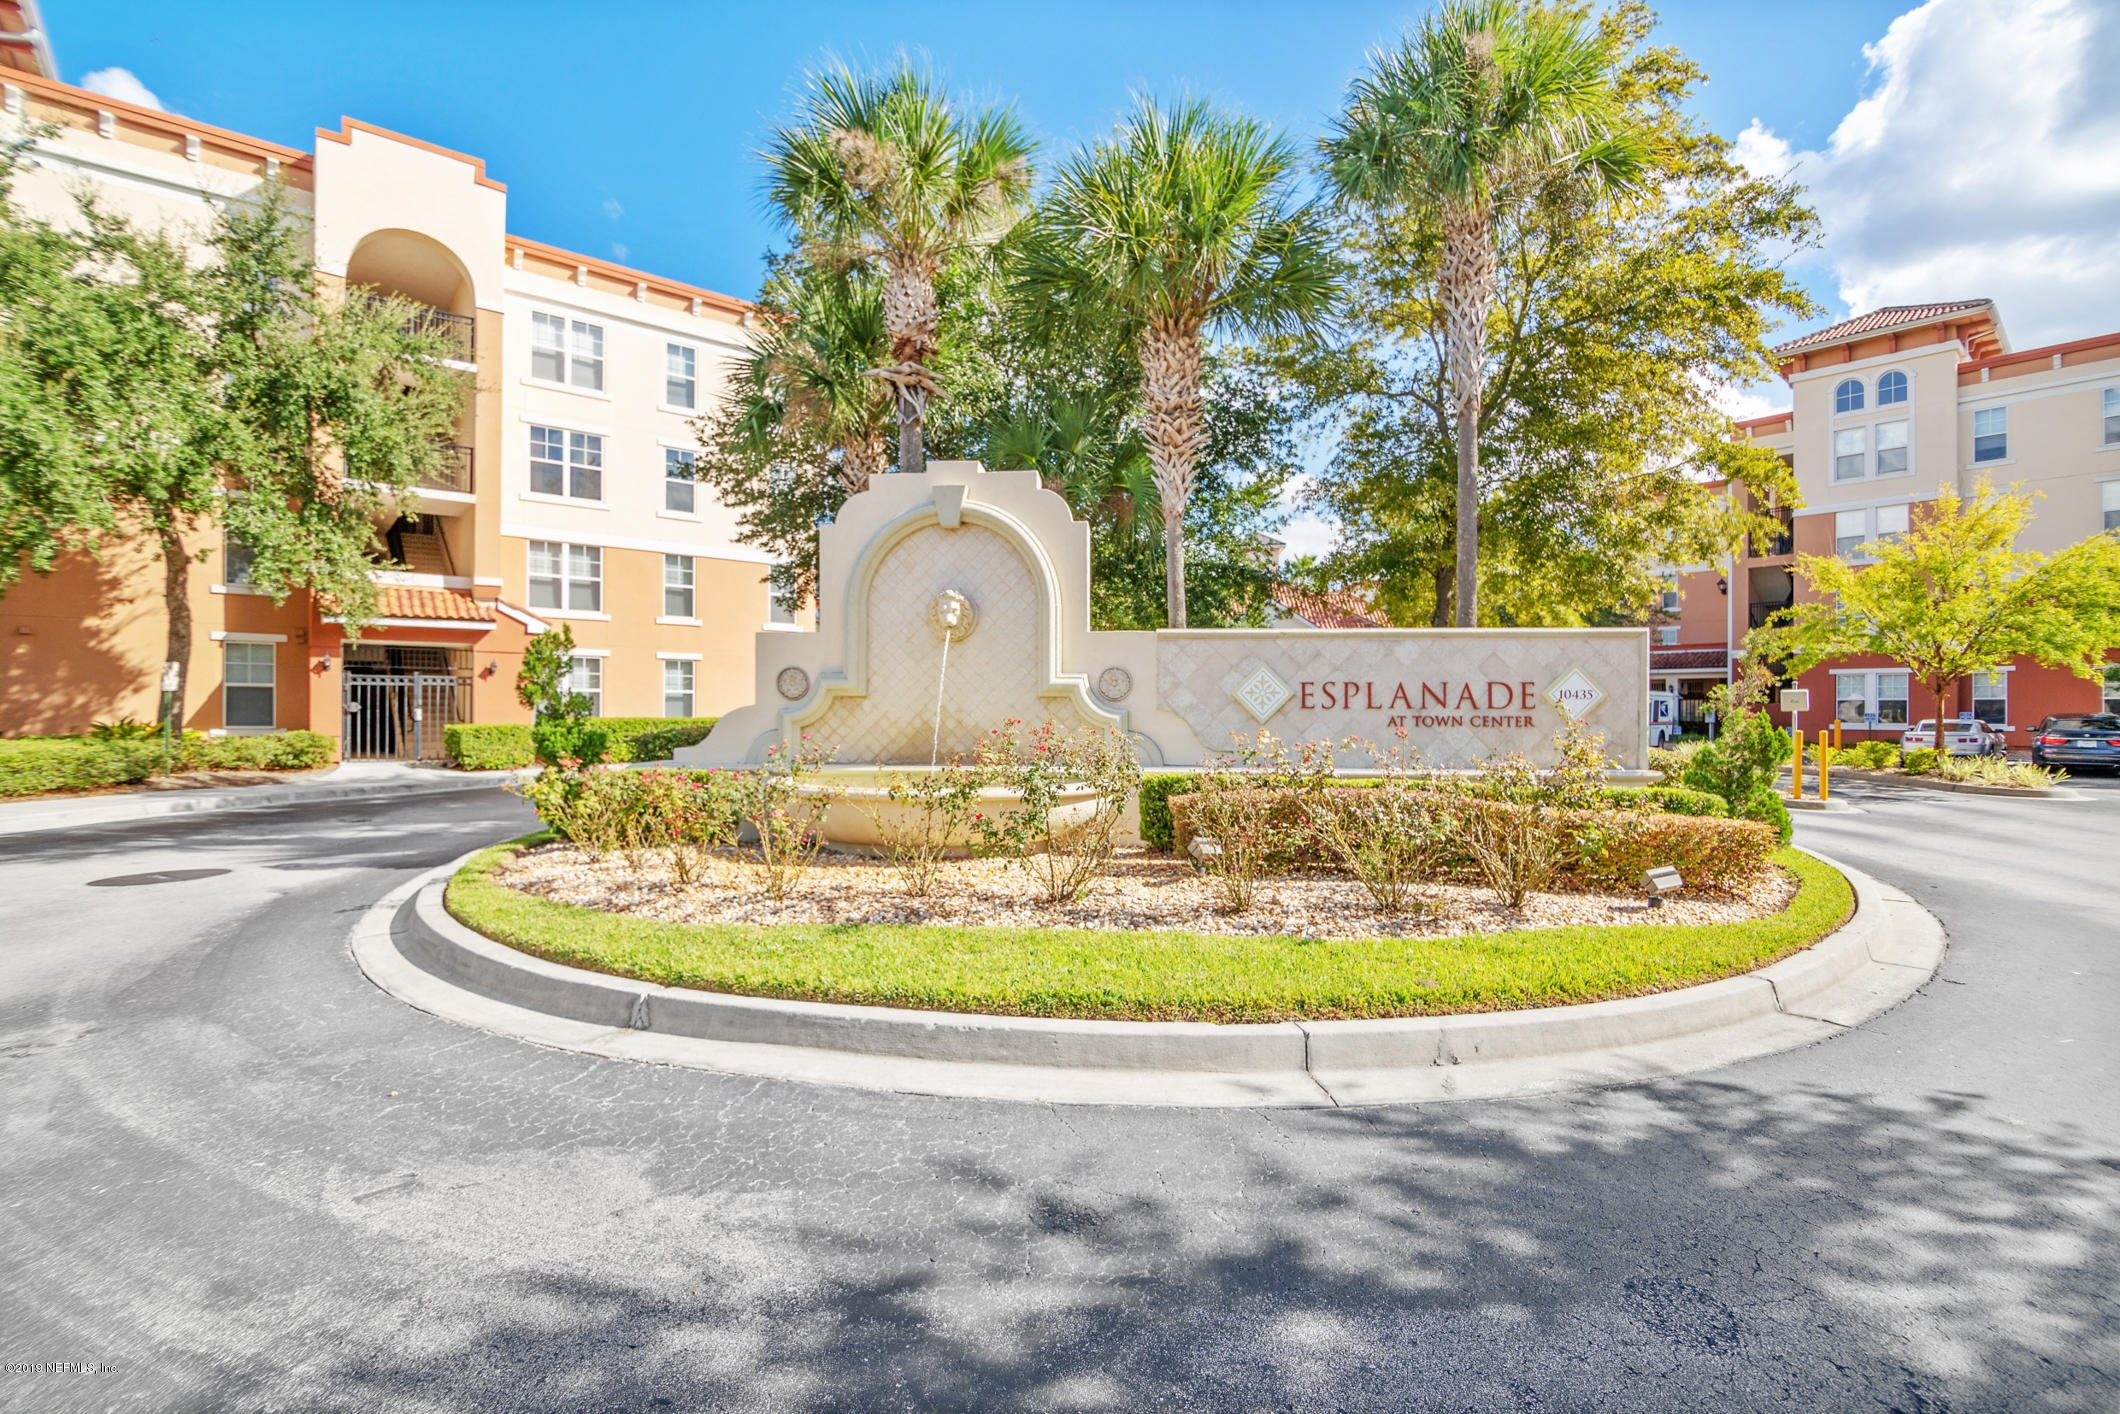 10435 MID TOWN, JACKSONVILLE, FLORIDA 32246, 2 Bedrooms Bedrooms, ,2 BathroomsBathrooms,Condo,For sale,MID TOWN,1013752